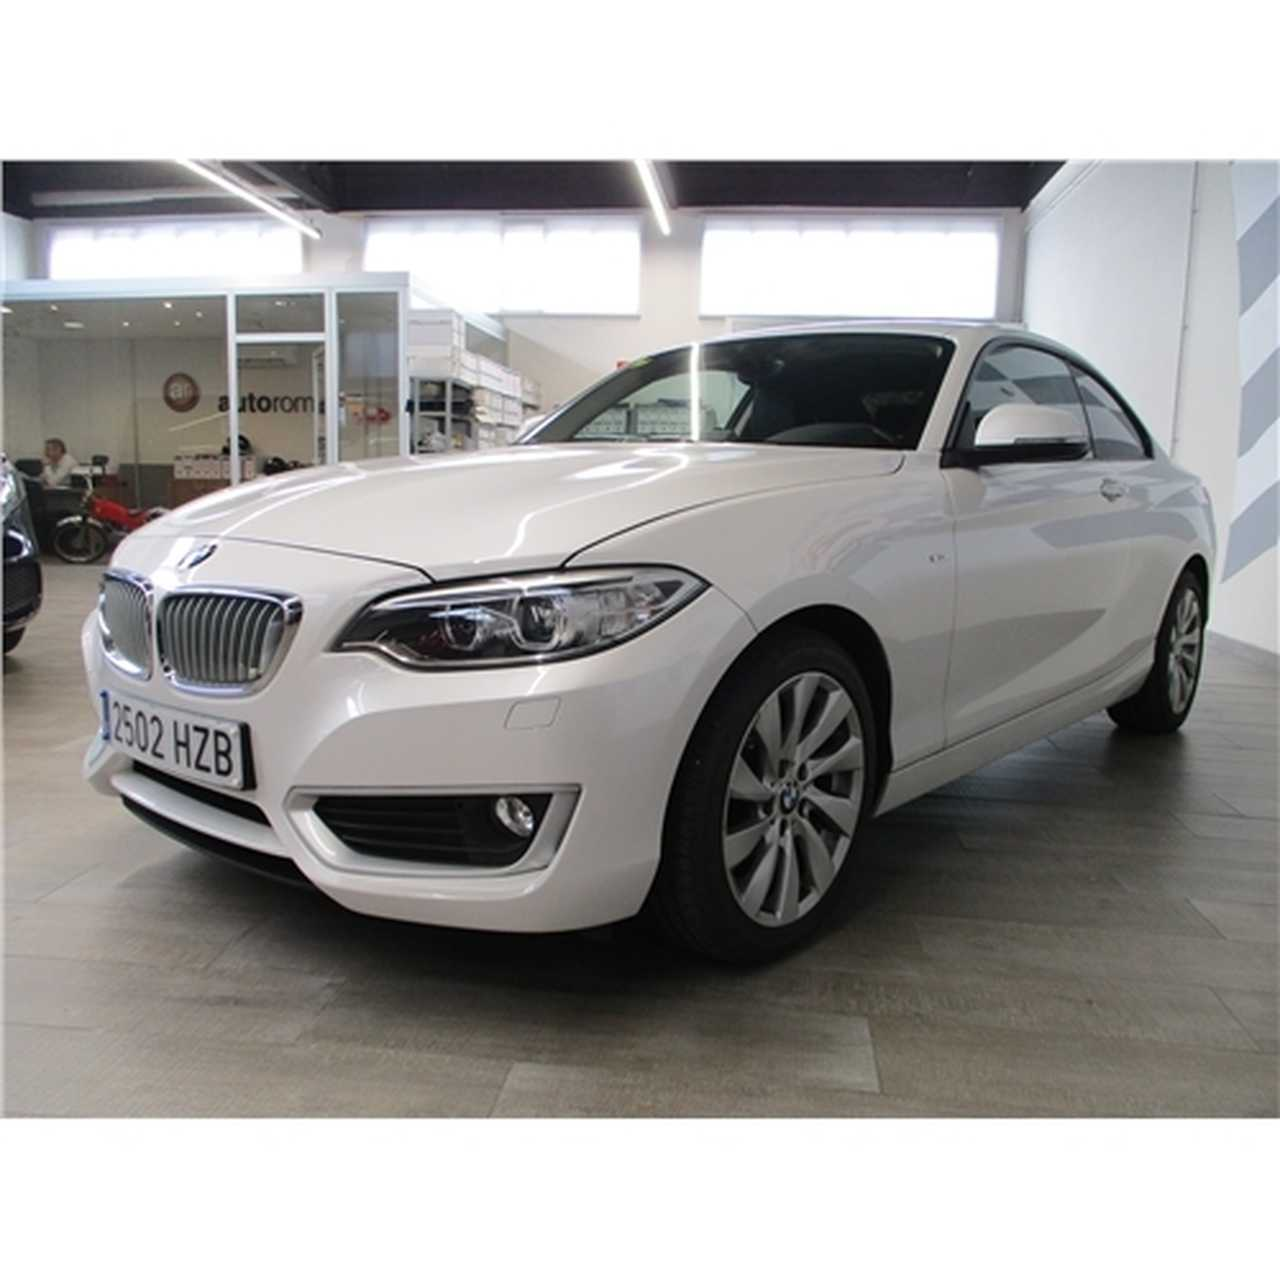 BMW Serie 2 Coupe 218d  - Foto 1